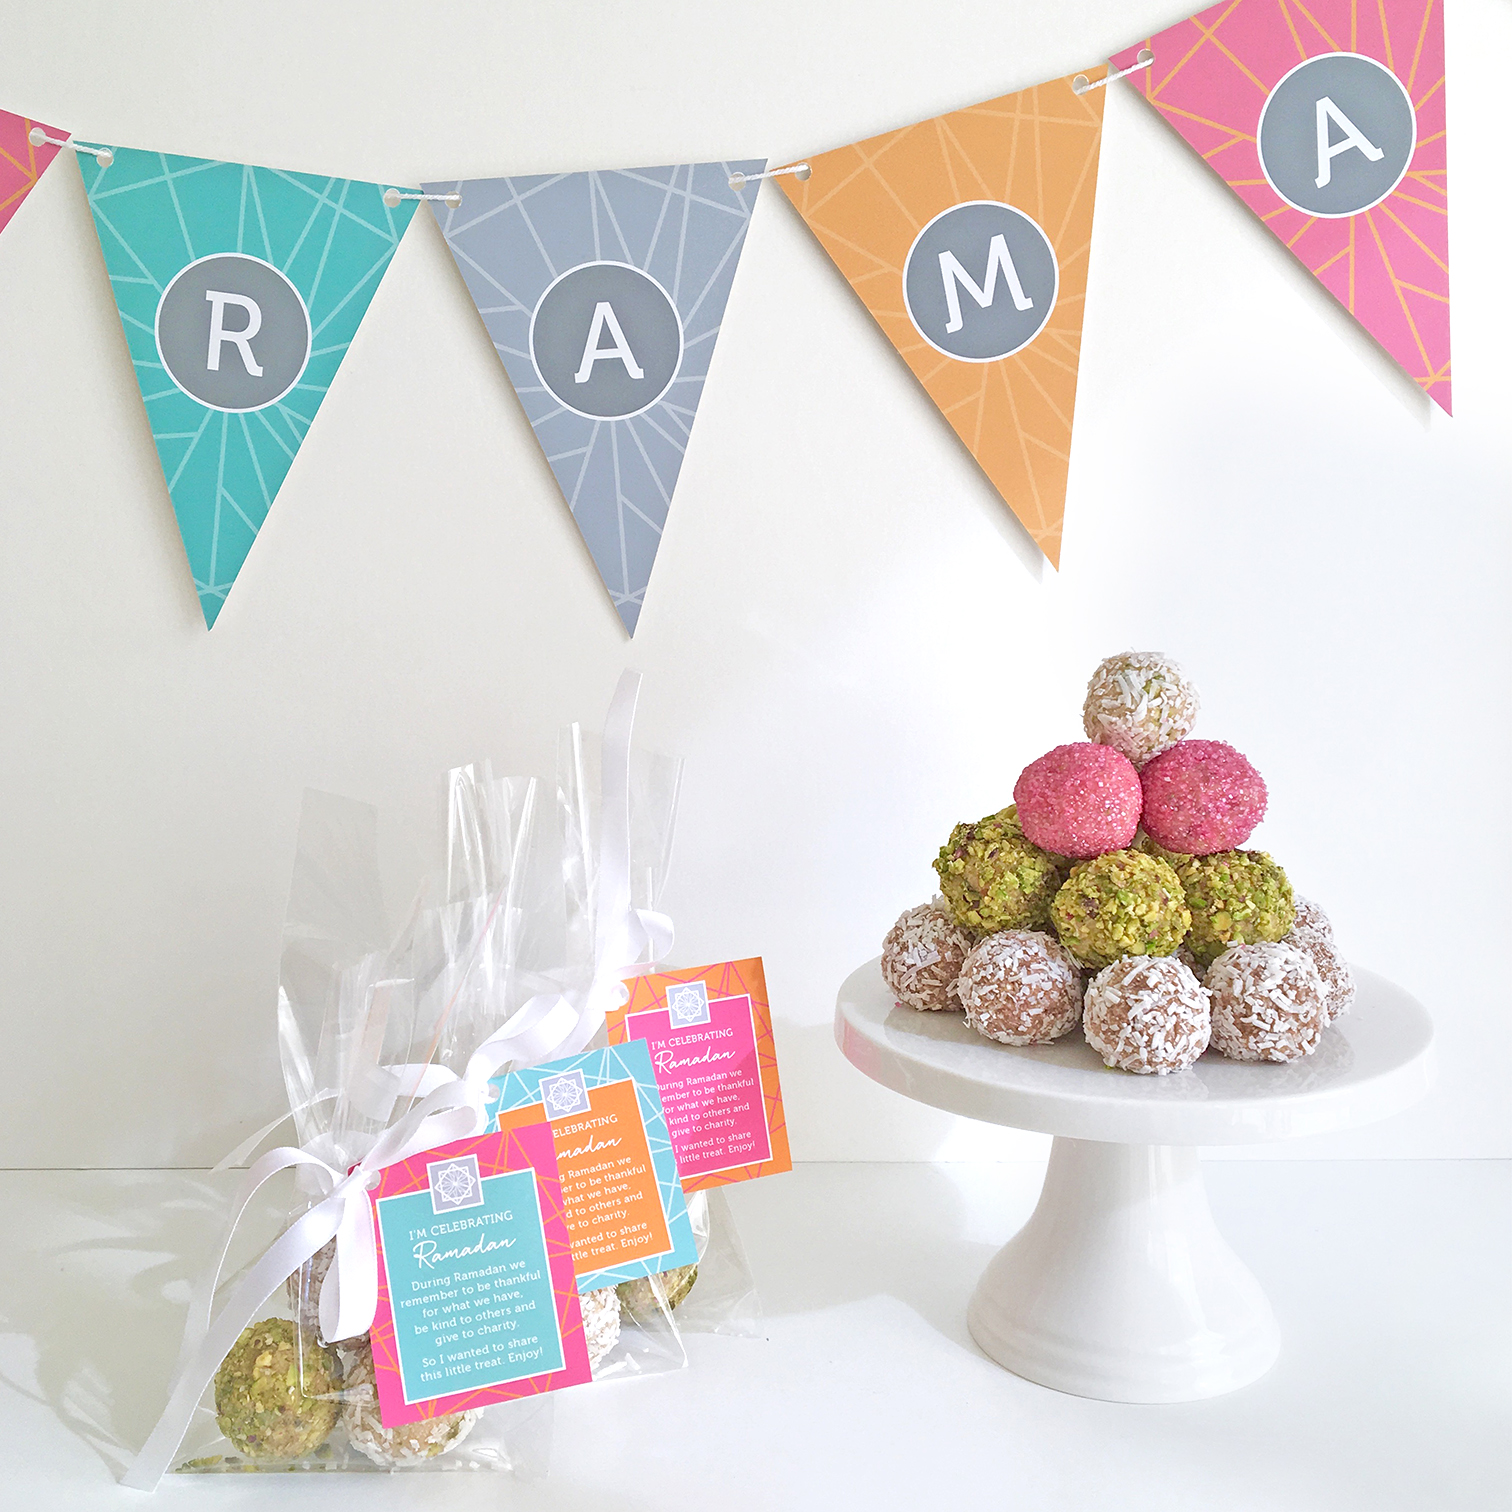 Ramadan-Activties-For-Kids-Truffle-Recipe-2